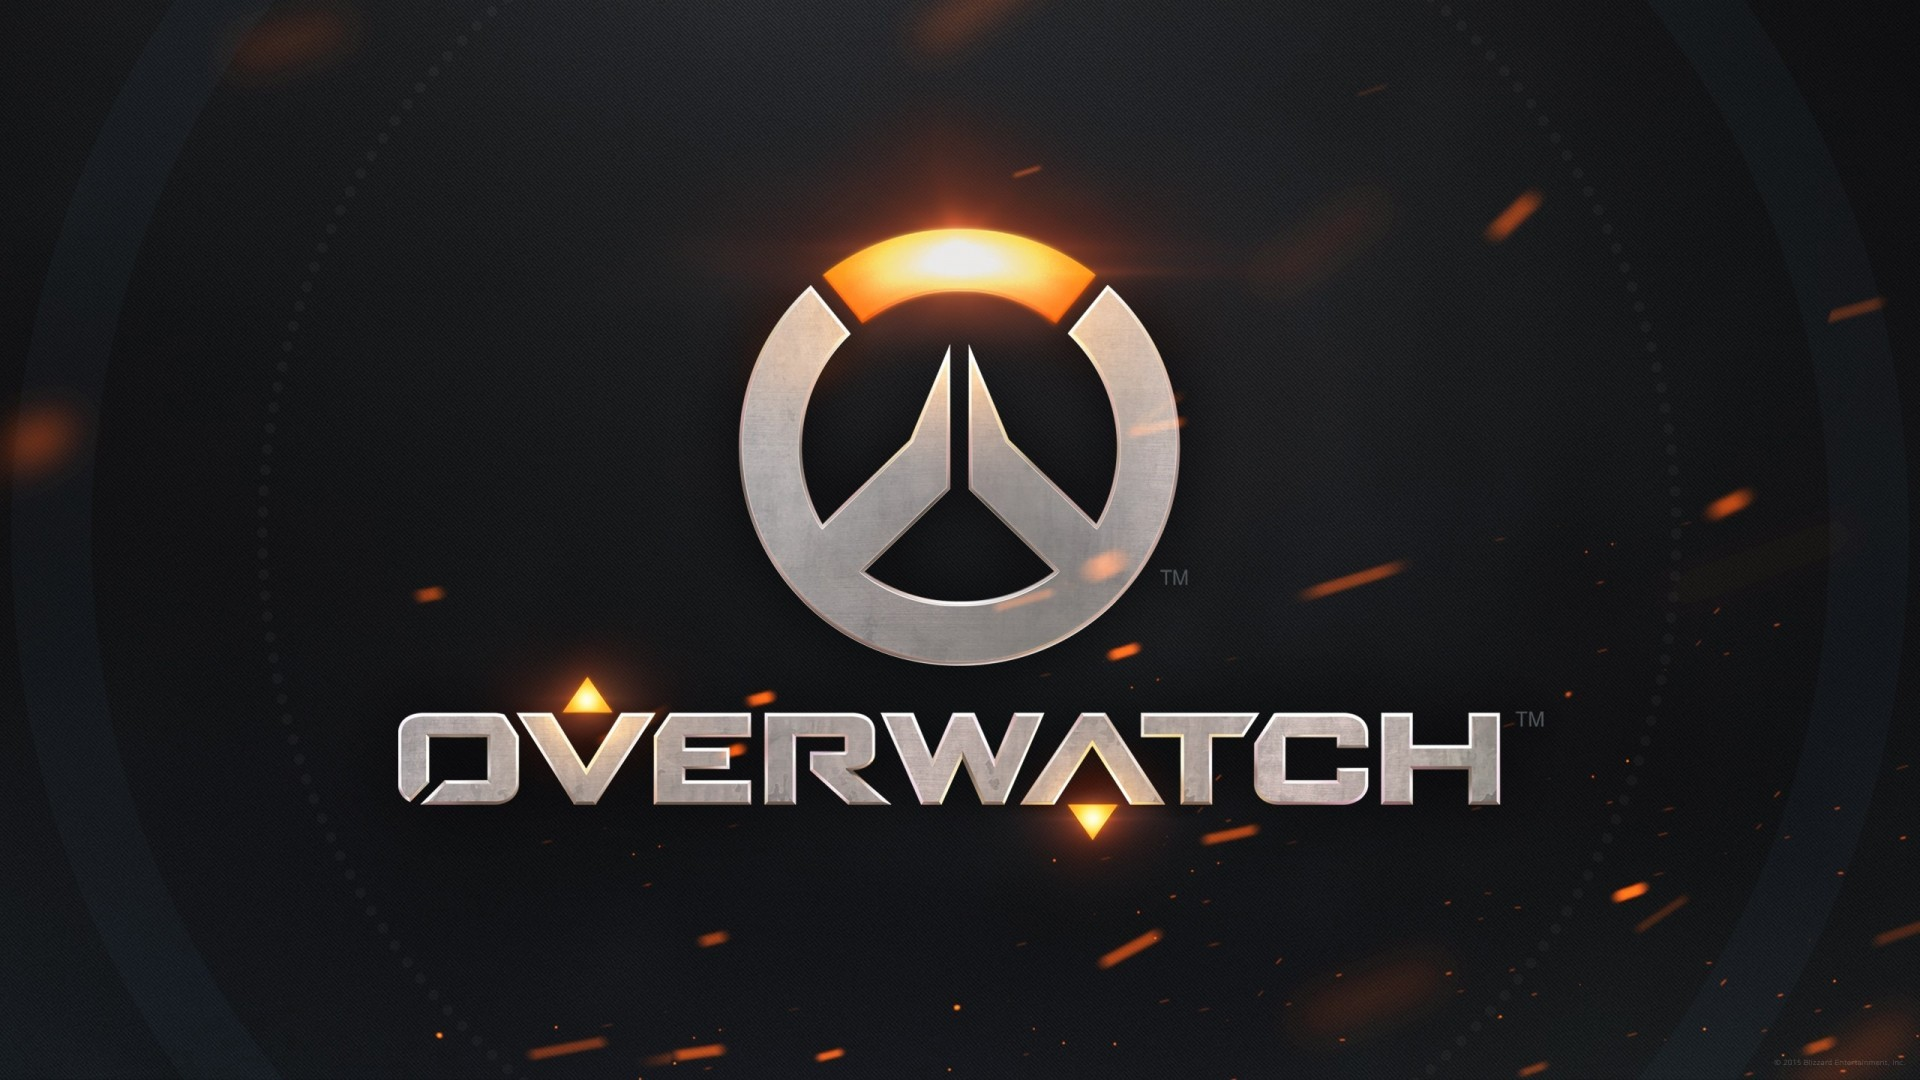 overwatch hd background